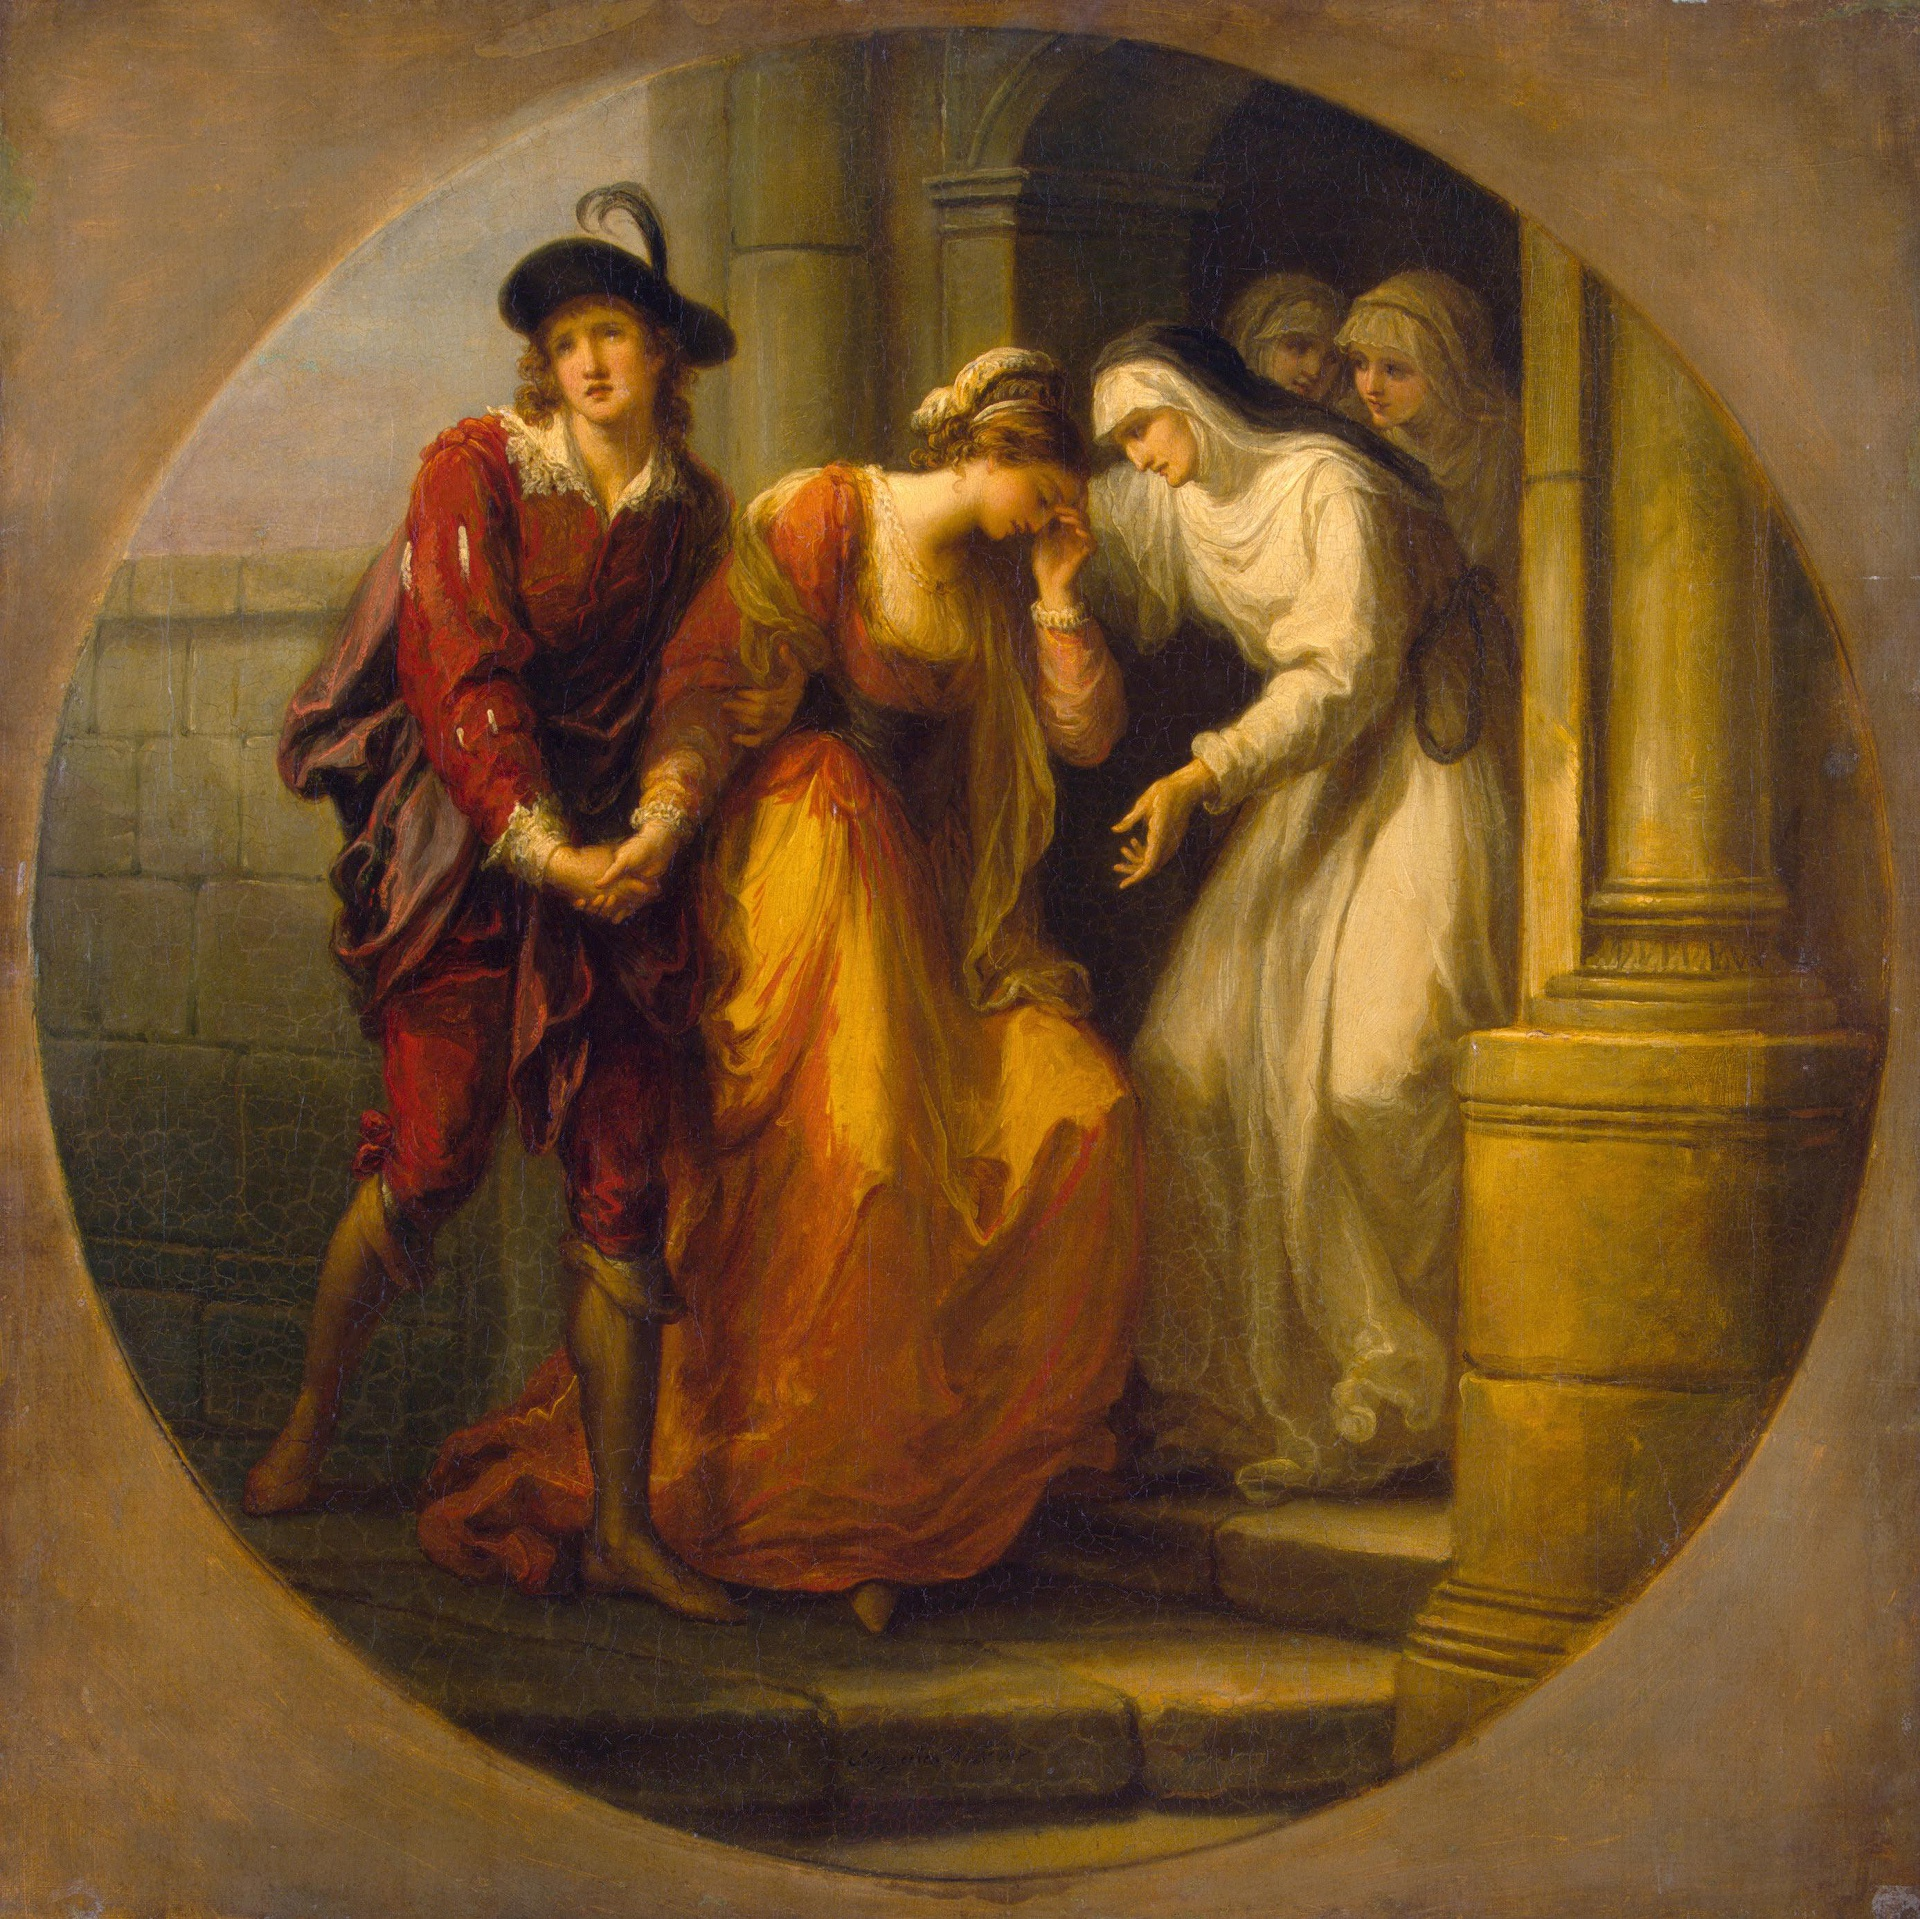 Angelika Kauffmann 1780 avant Parting of Abelard and Heloise Ermitage Saint Petersbourg